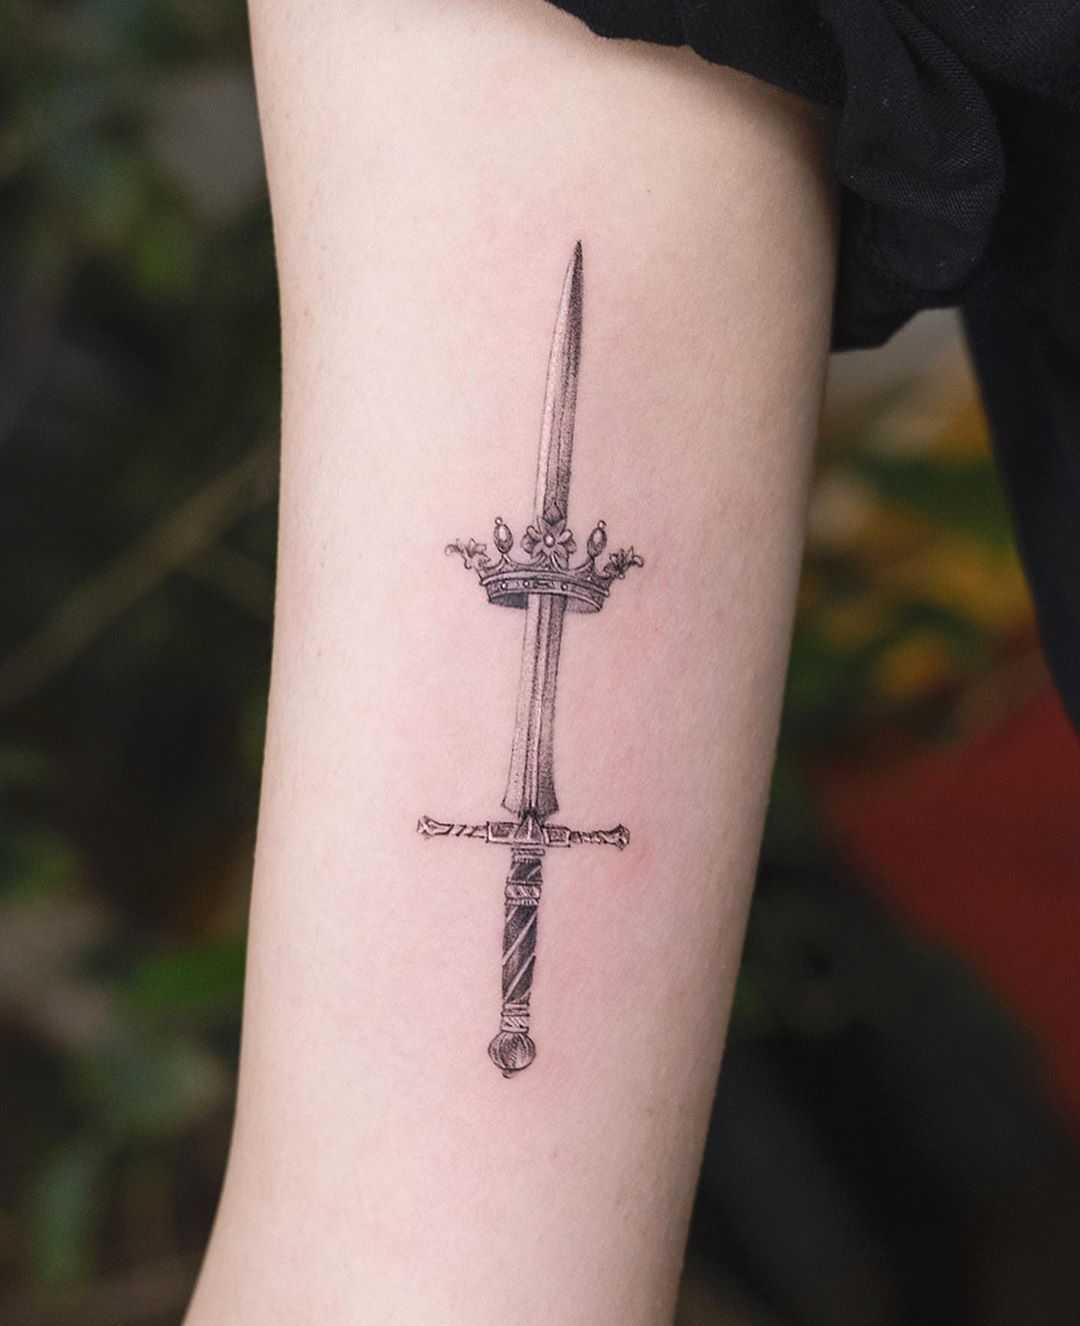 Sword and crown by tattooist Franky